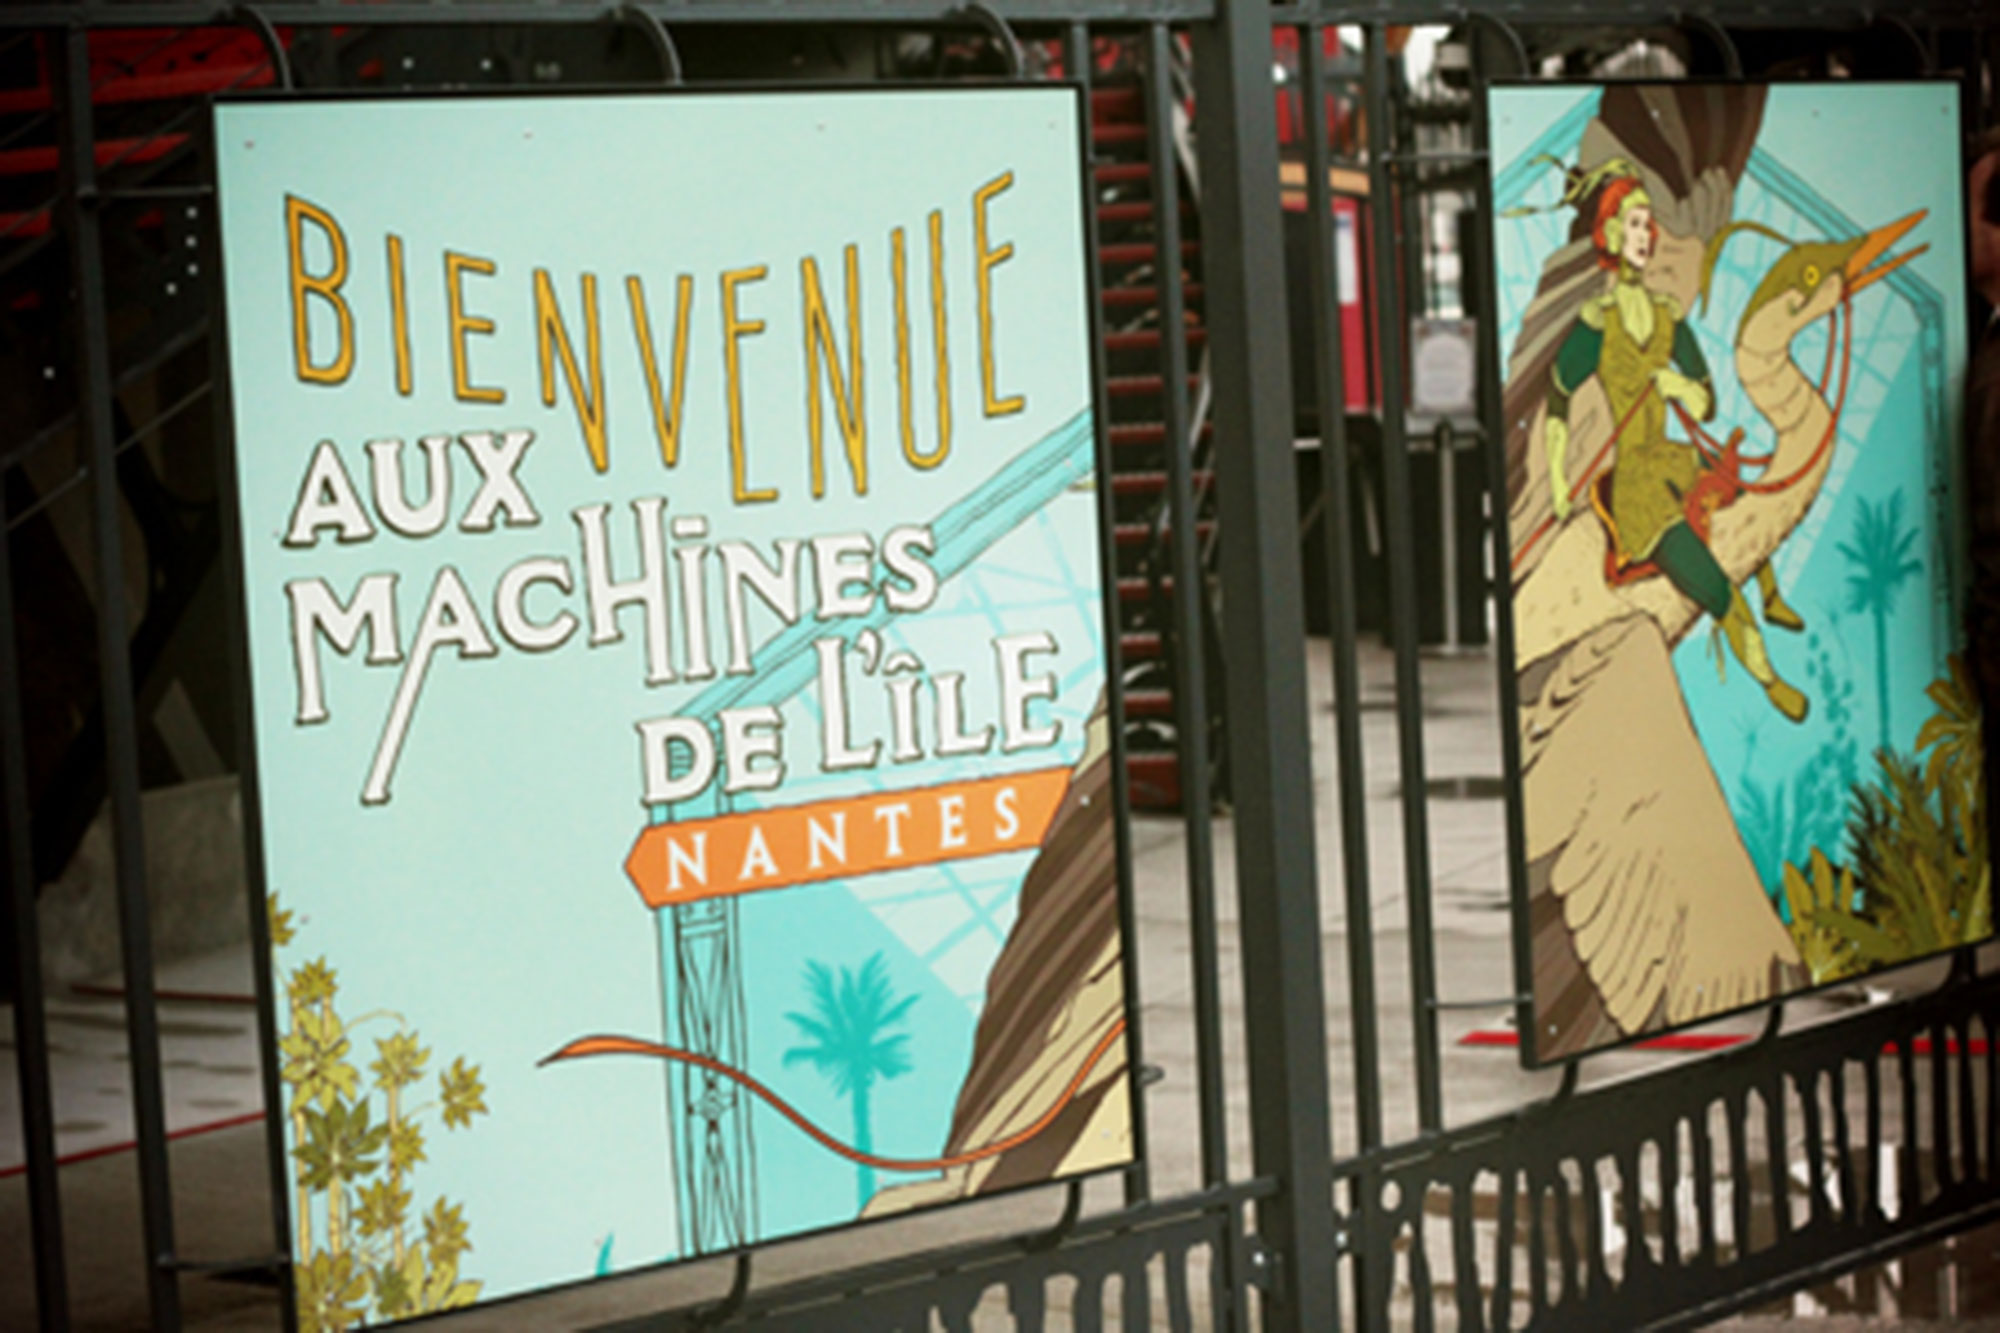 Happy Nantes – Les Machines de l'Ile